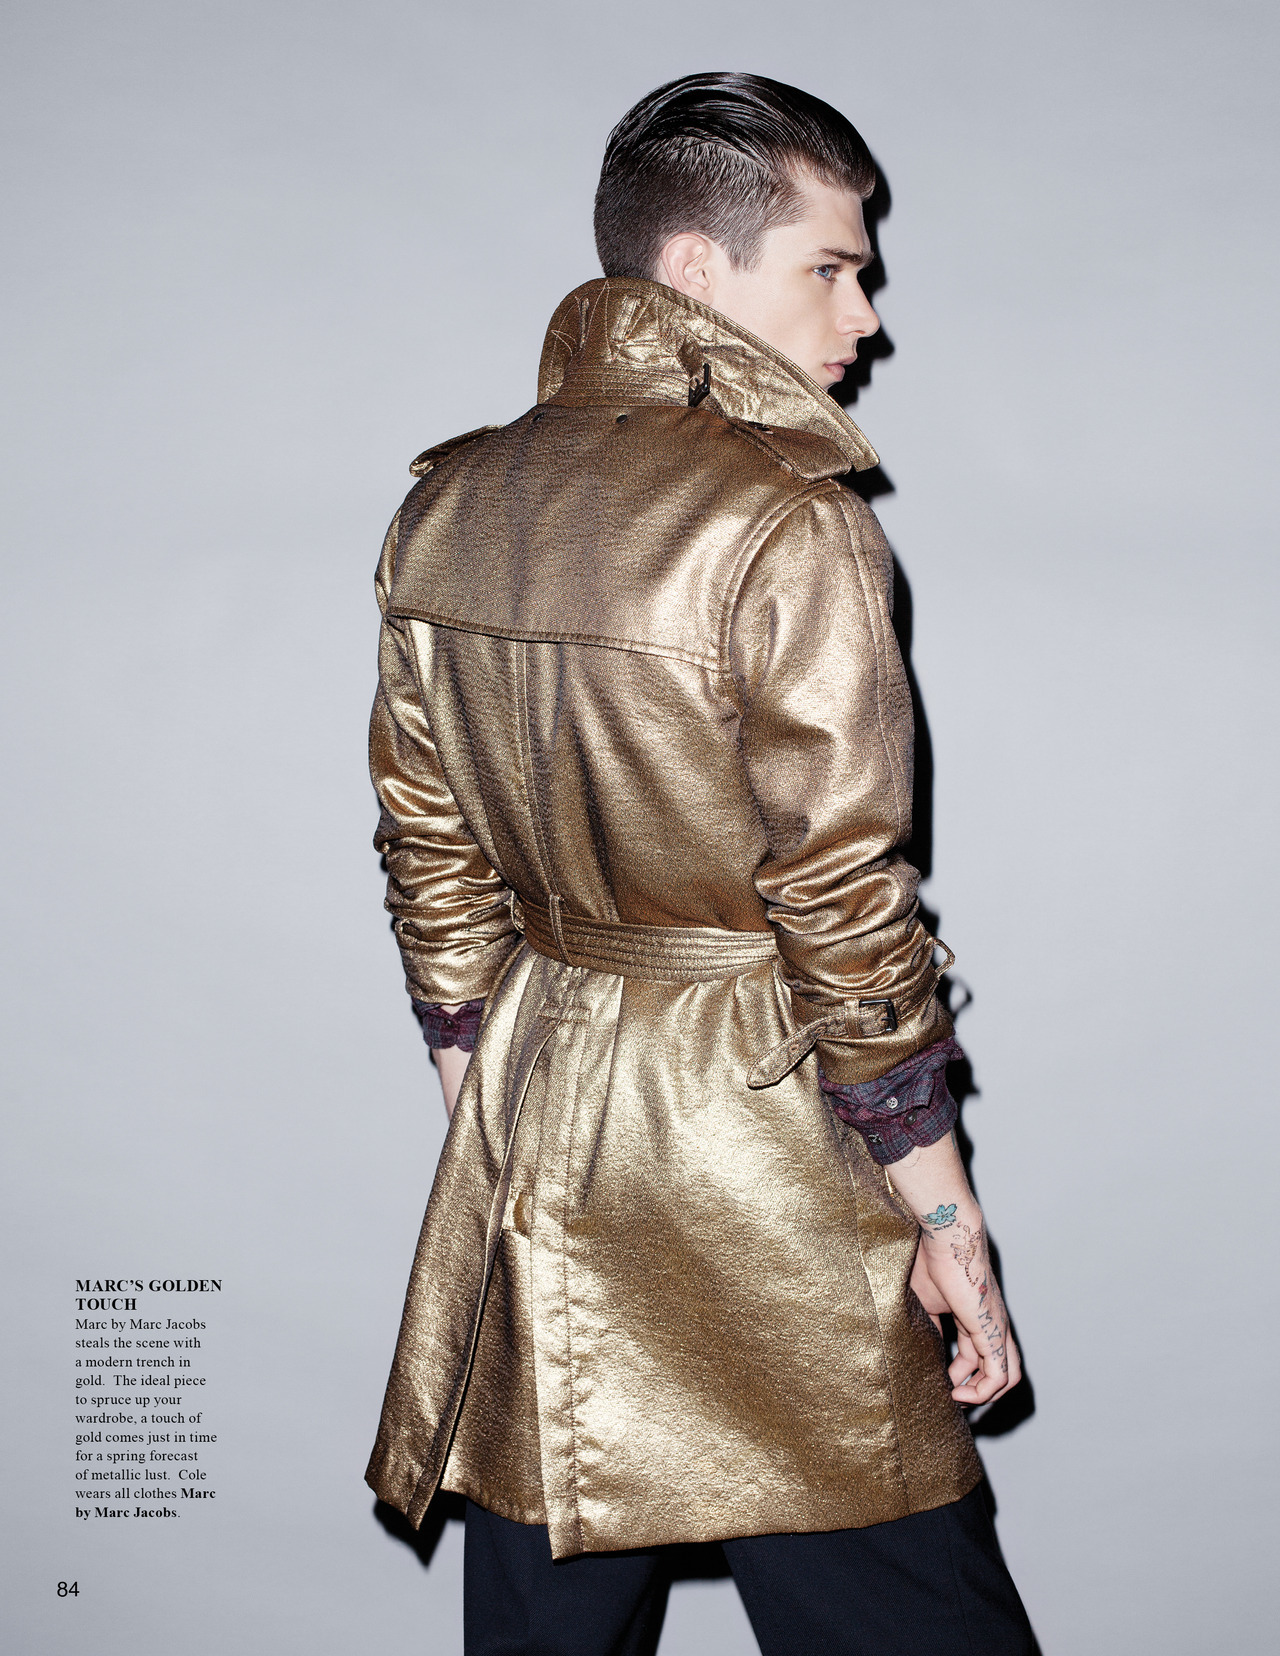 jensingvarsson:  Cole for The Fashionisto 5 editorial, shot by Jens Ingvarsson.